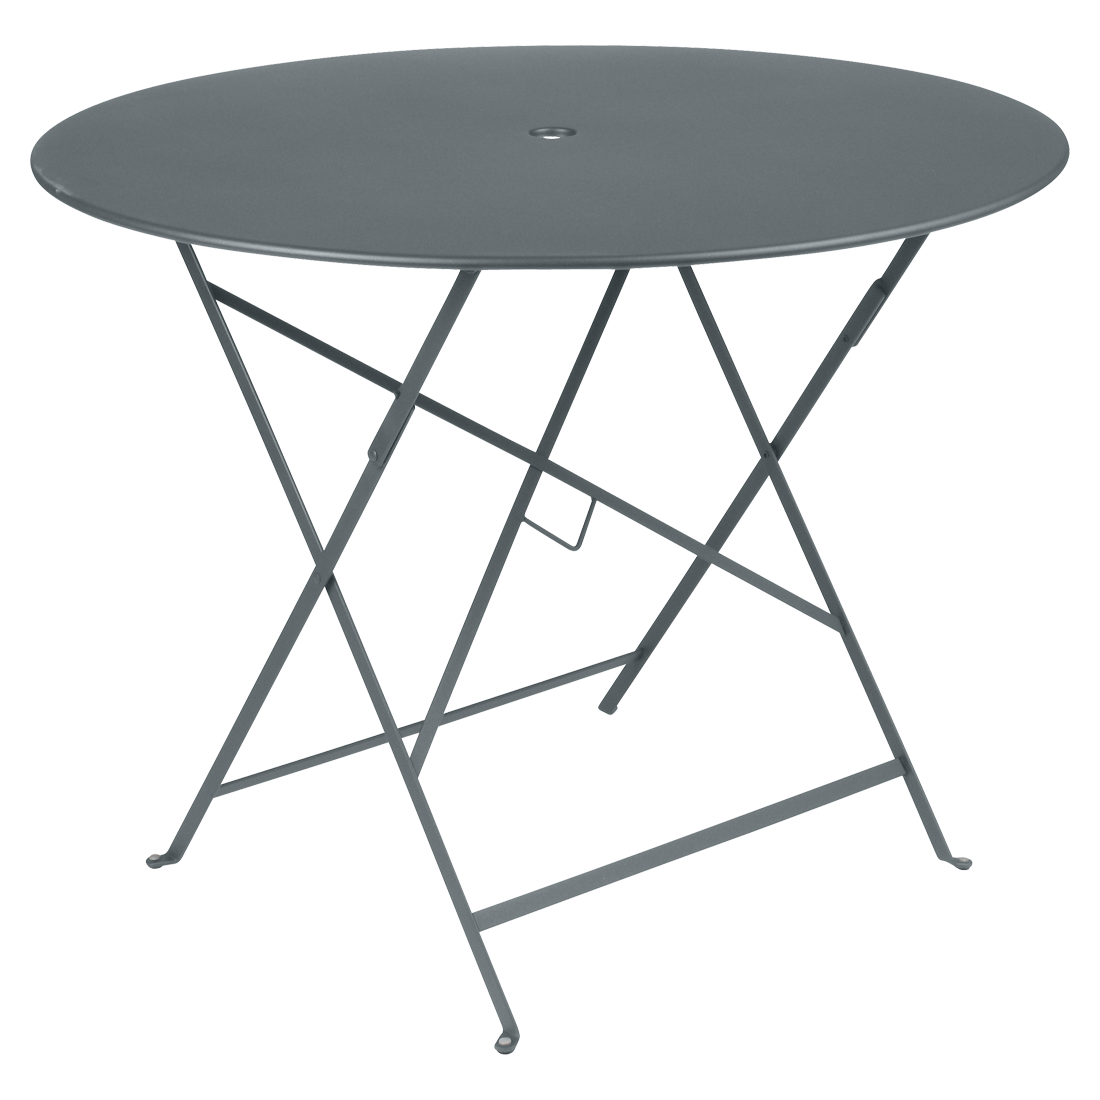 Table Bistro ronde 96 cm, table de jardin, table ronde jardin